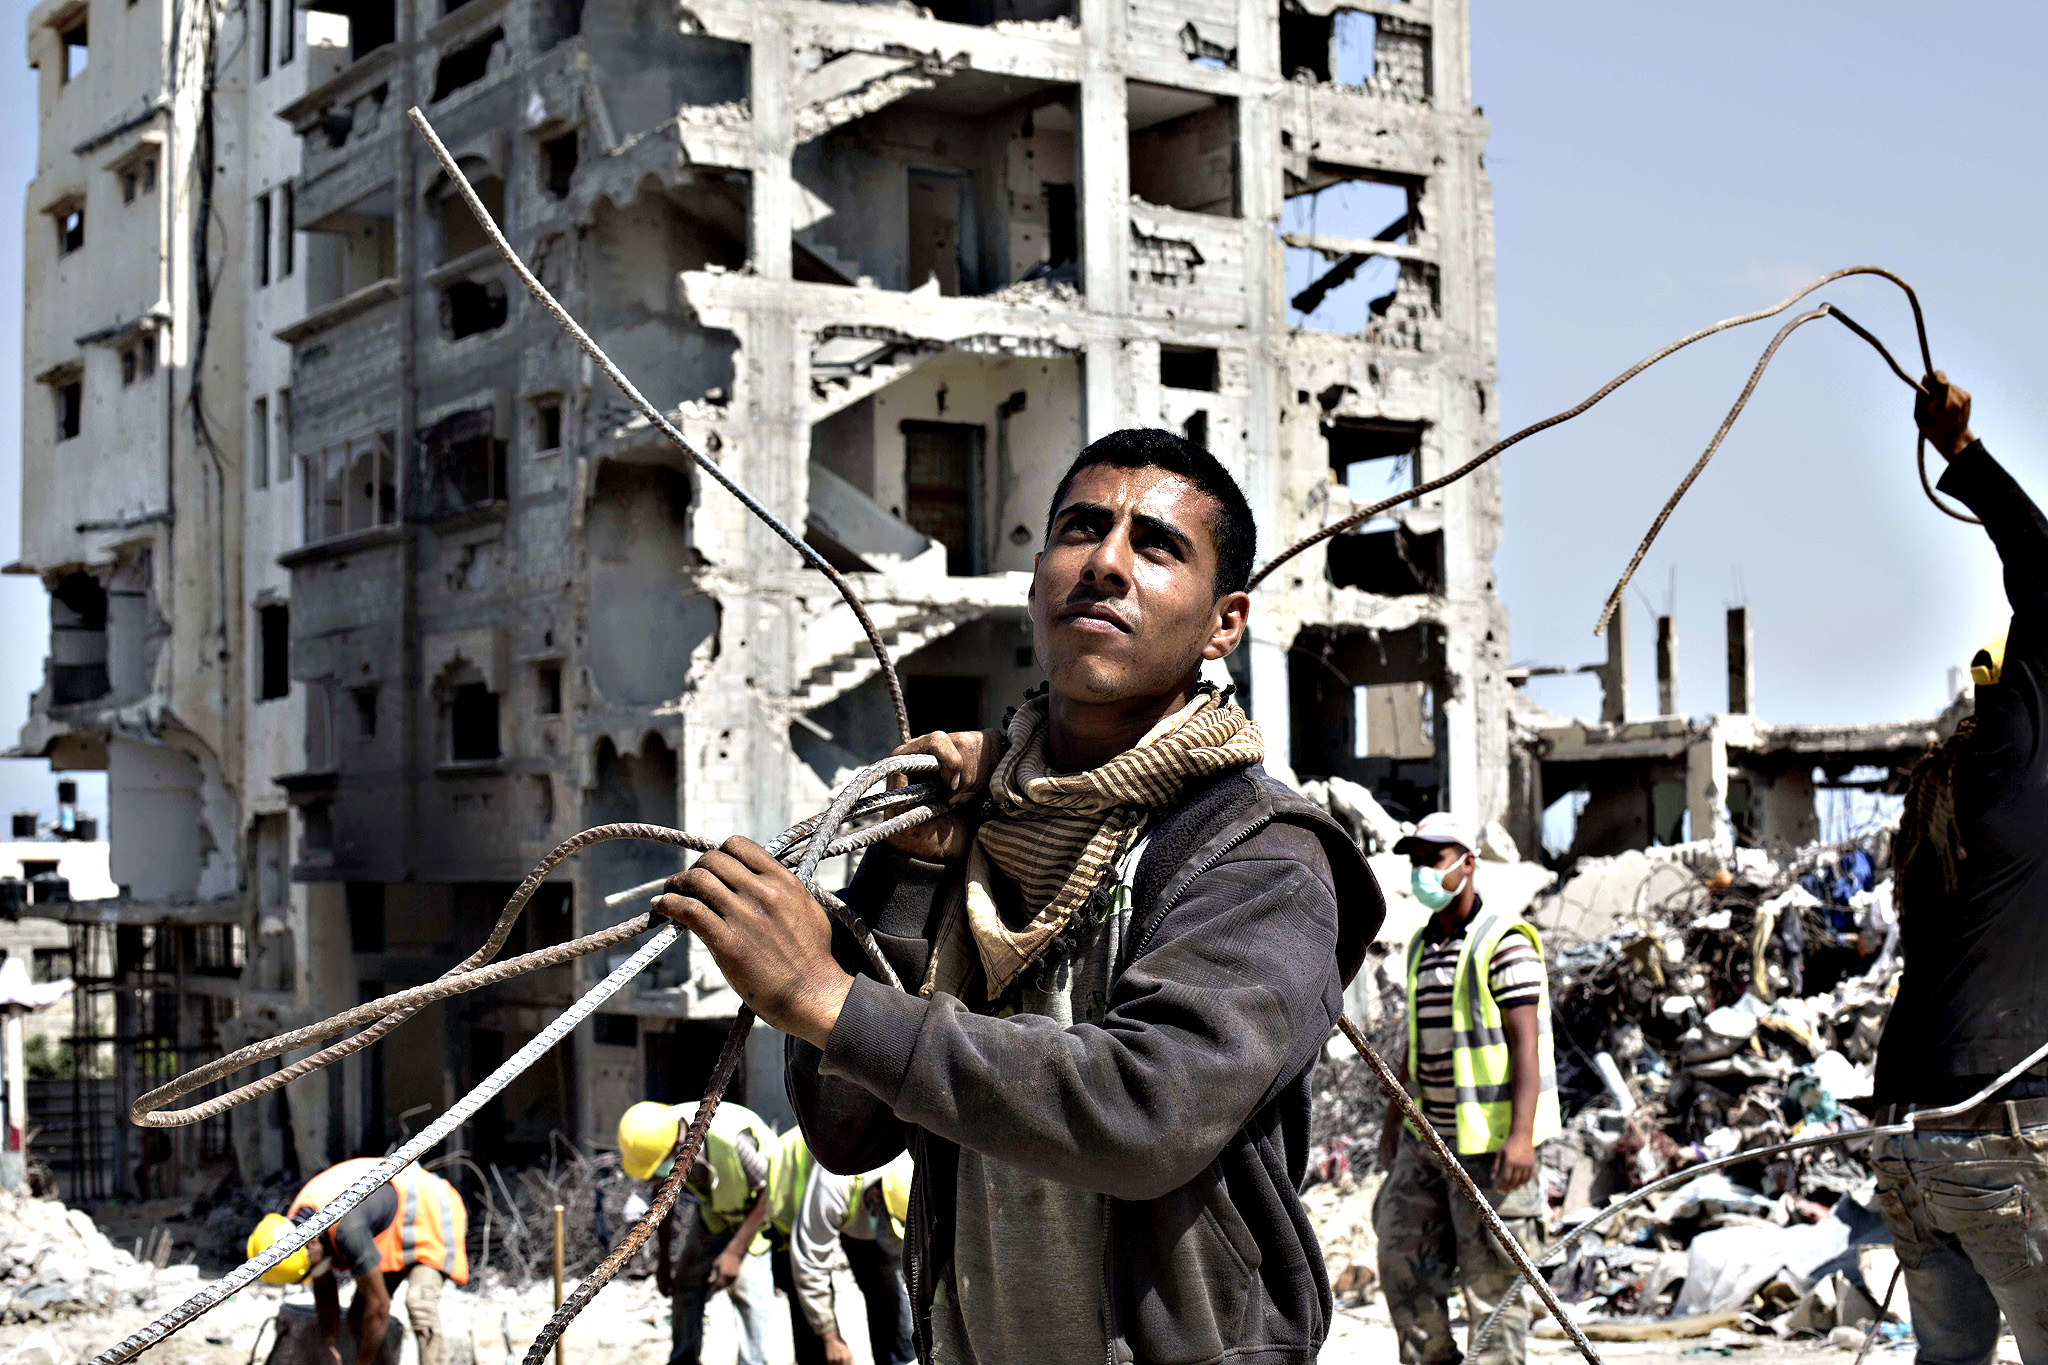 Palestinian workers remove iron from the rubble of a building that was destroyed during the 50-day war between Israel and Hamas' militants in the summer of 2014, in the al-Shejaeiya neighbourhood, east of Gaza City, on July 2, 2015.